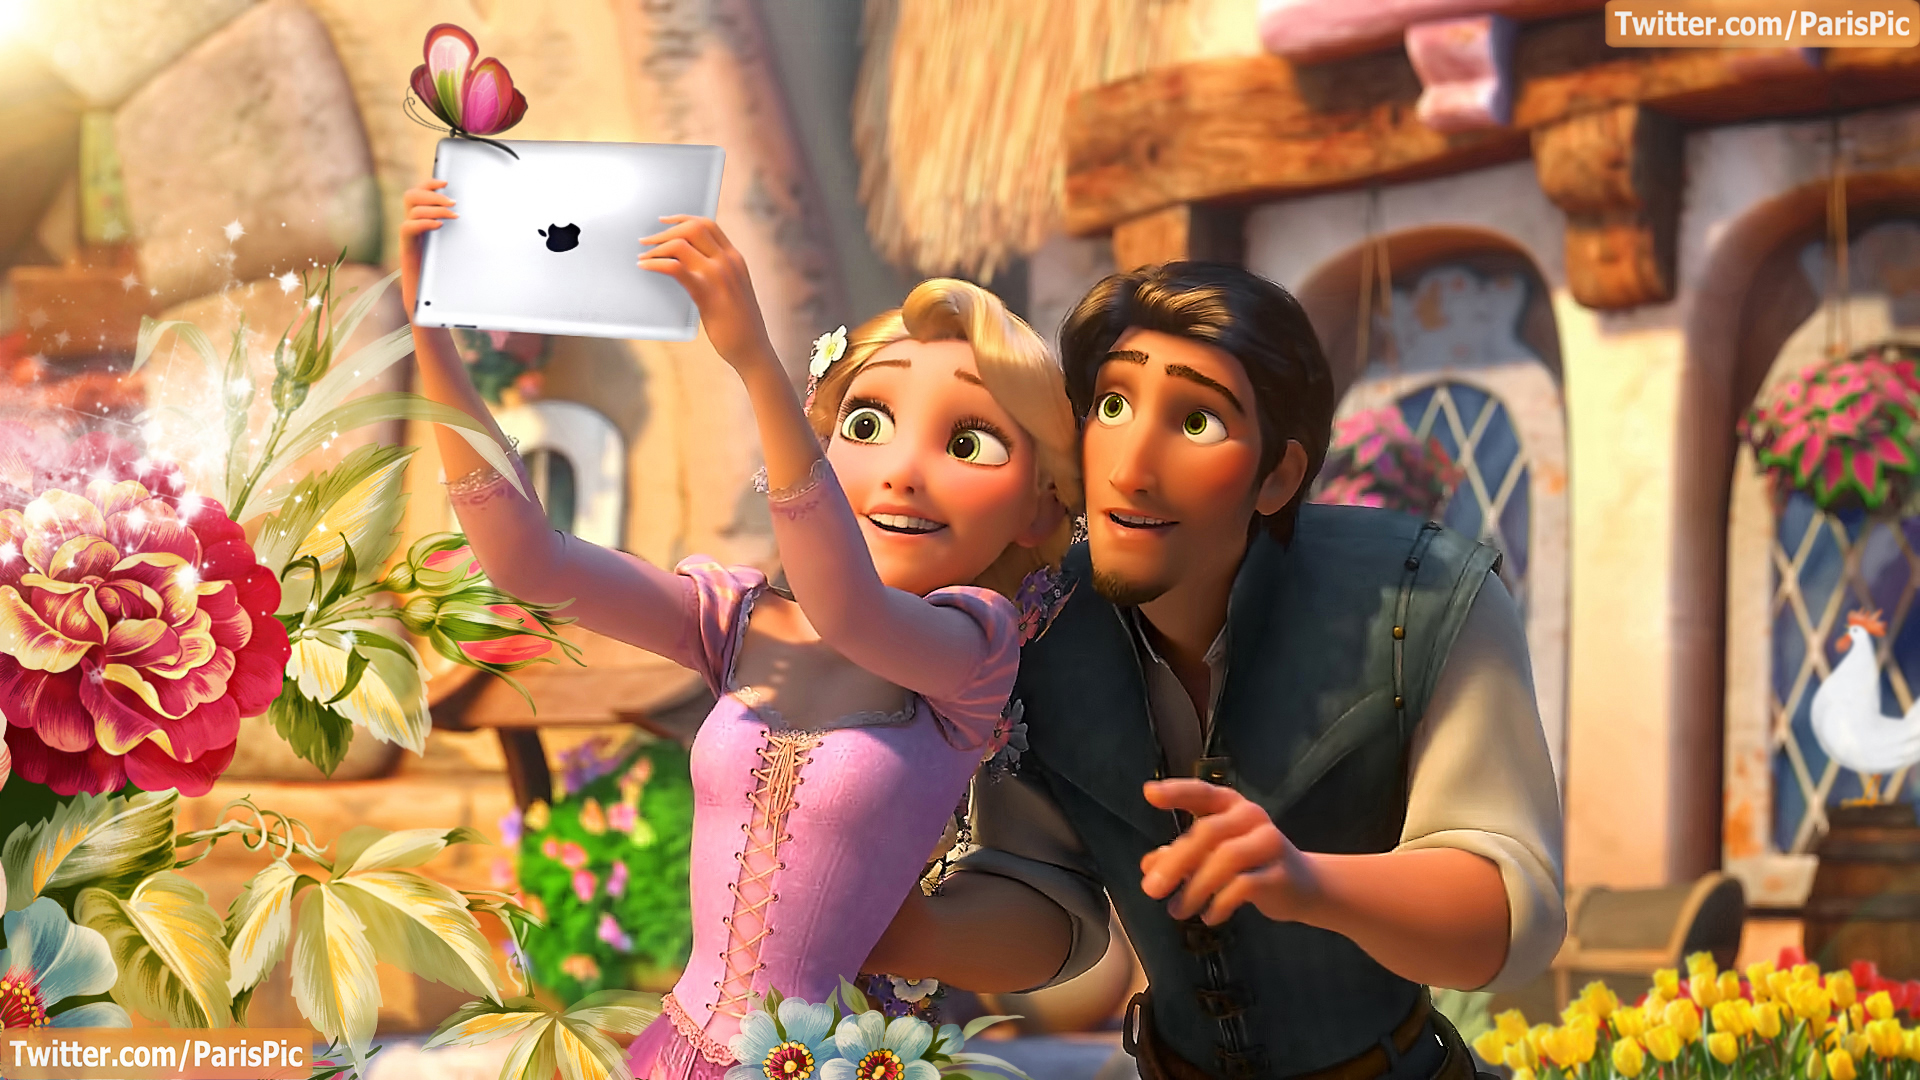 Tangled Images Ipad Butterfly Rapunzel Flynn Rider ParisPic HD Wallpaper And Background Photos